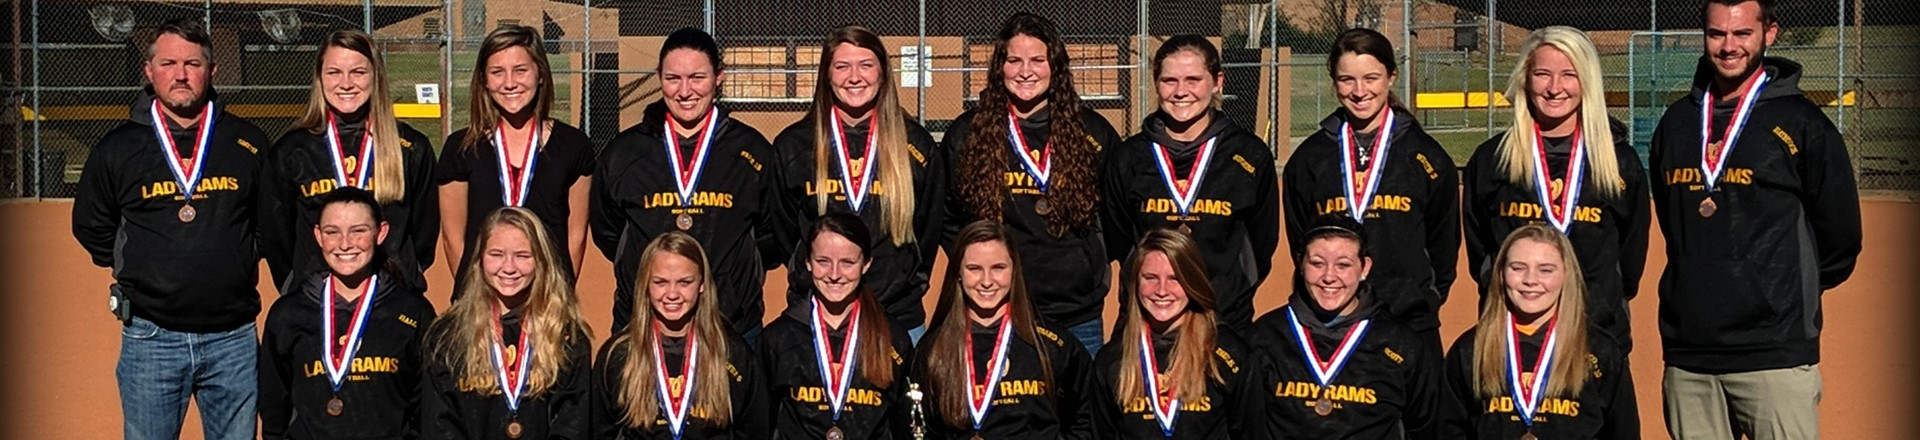 WCHS Varsity Lady Rams Softball